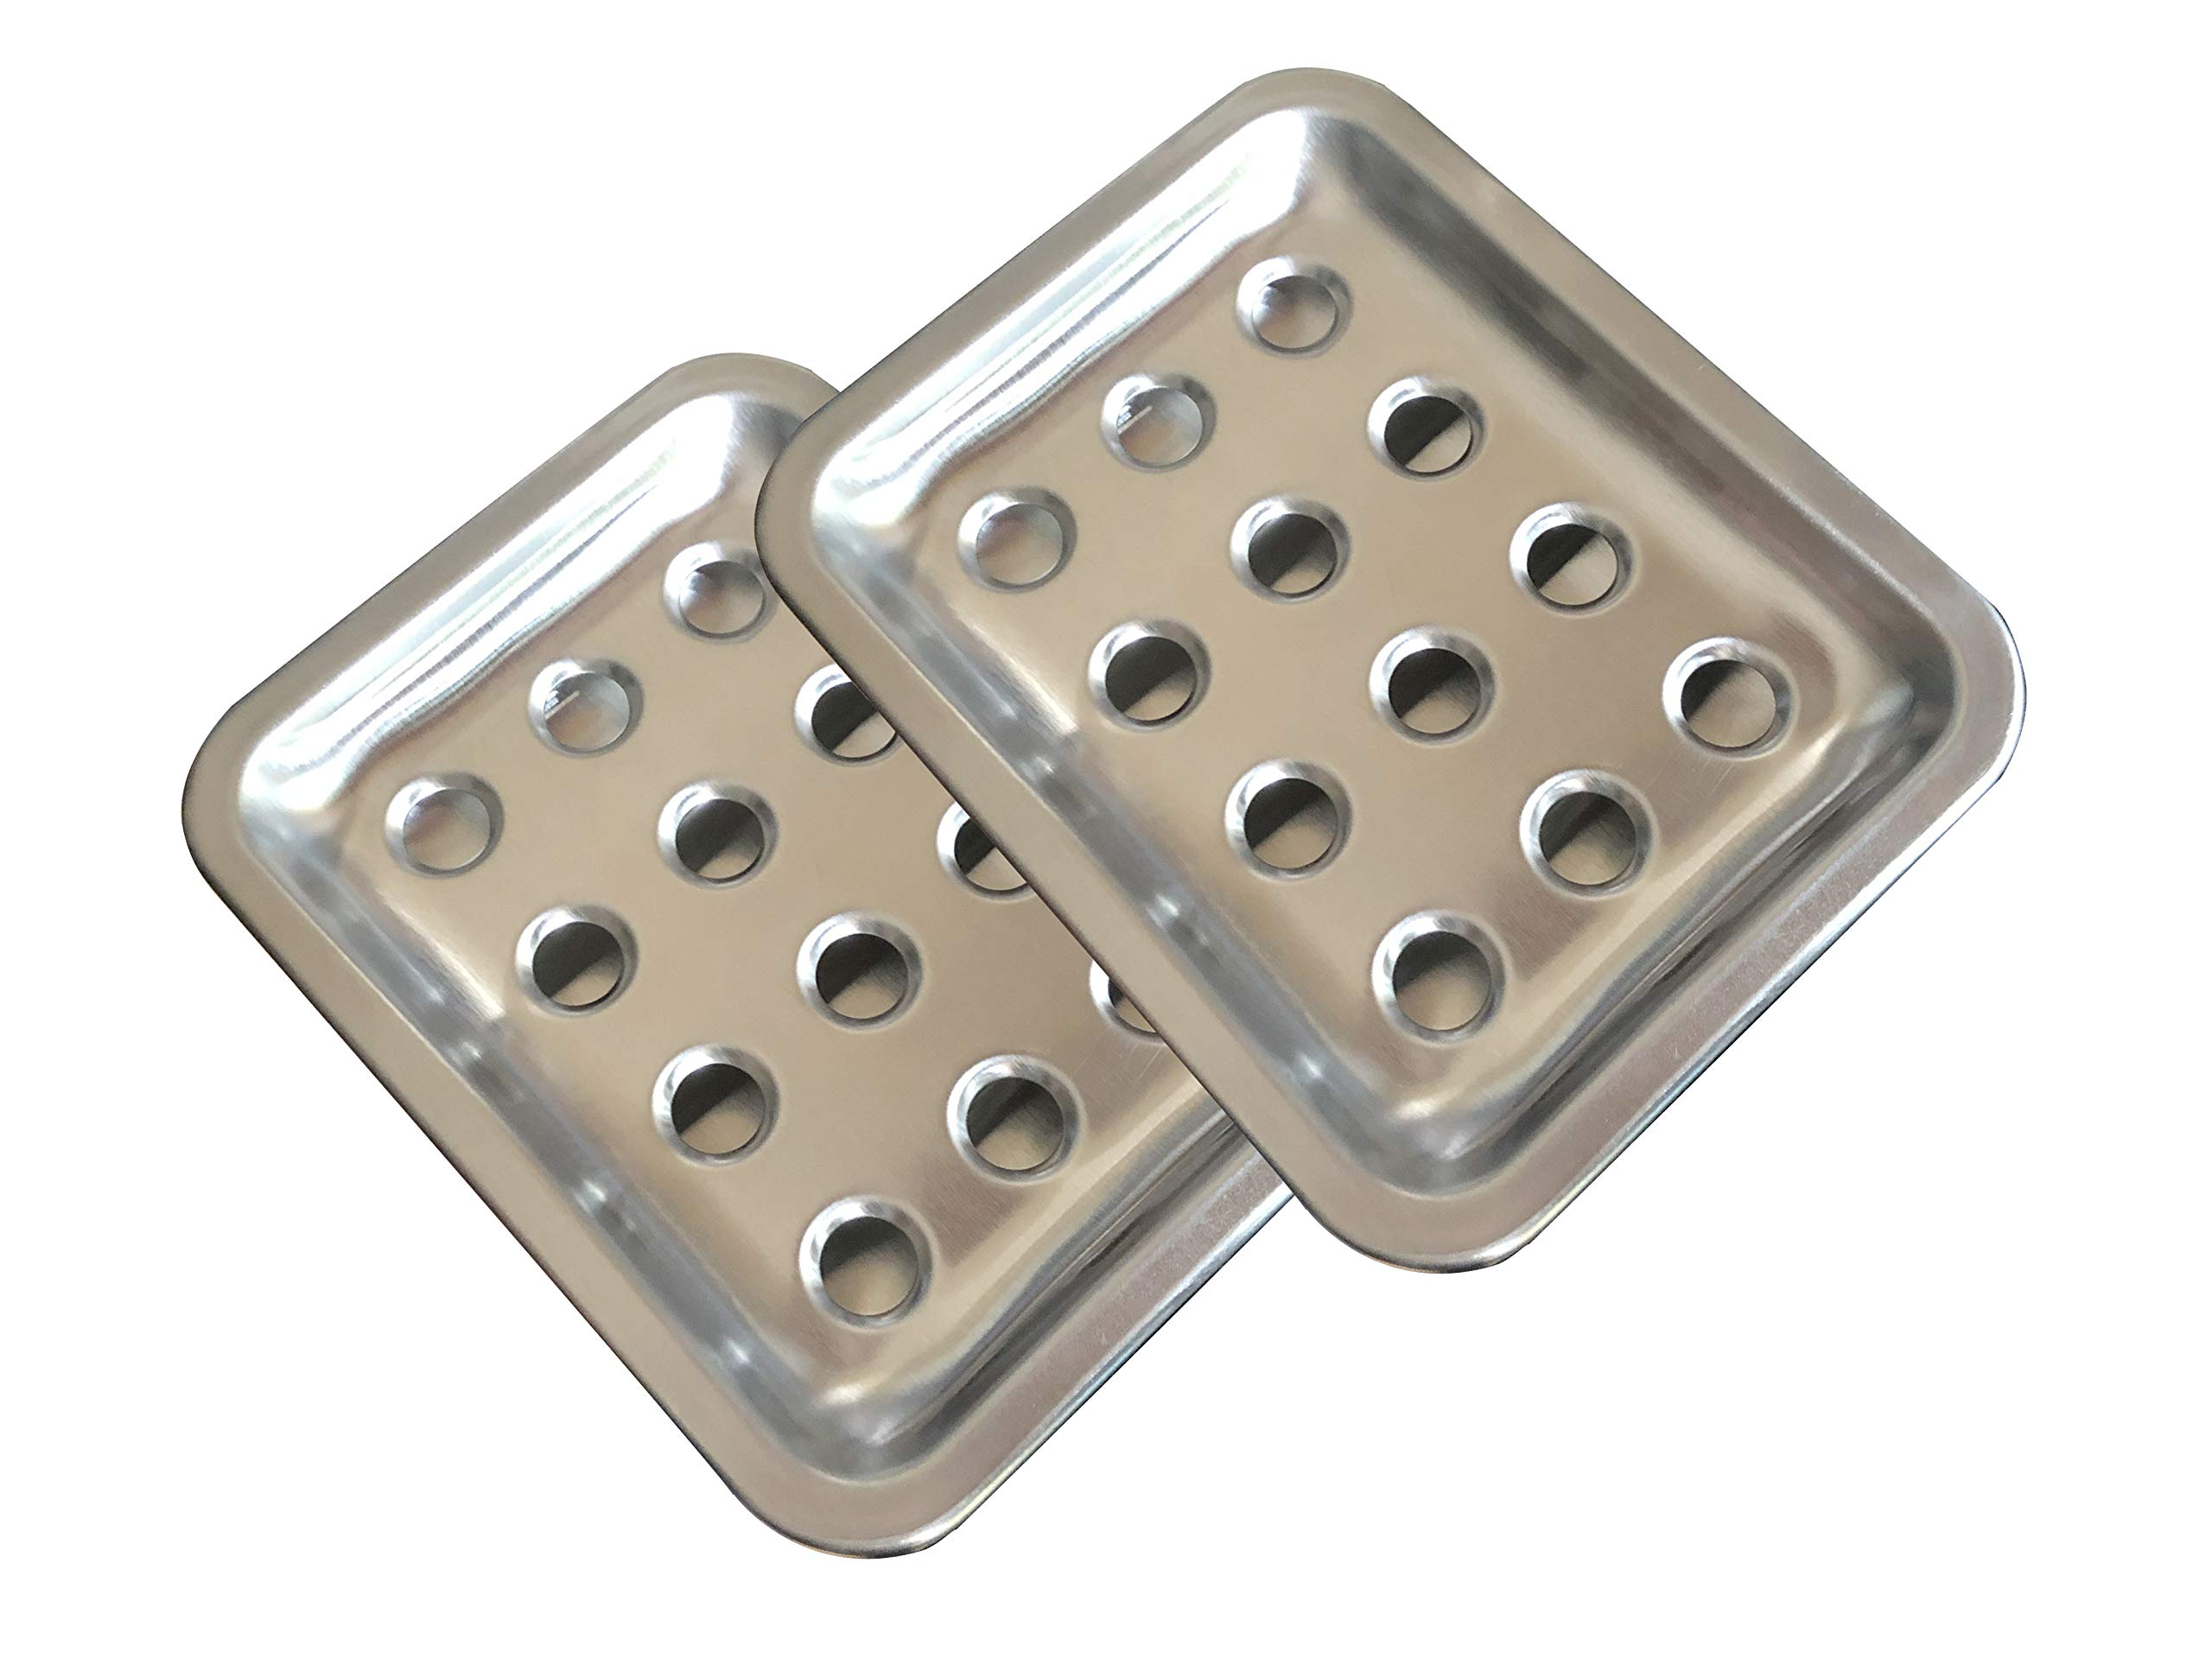 Blacksail 2-Pack Large Size Stainless Steel Bar Soap Dish Holder with Draining Tray for Bathroom Shower